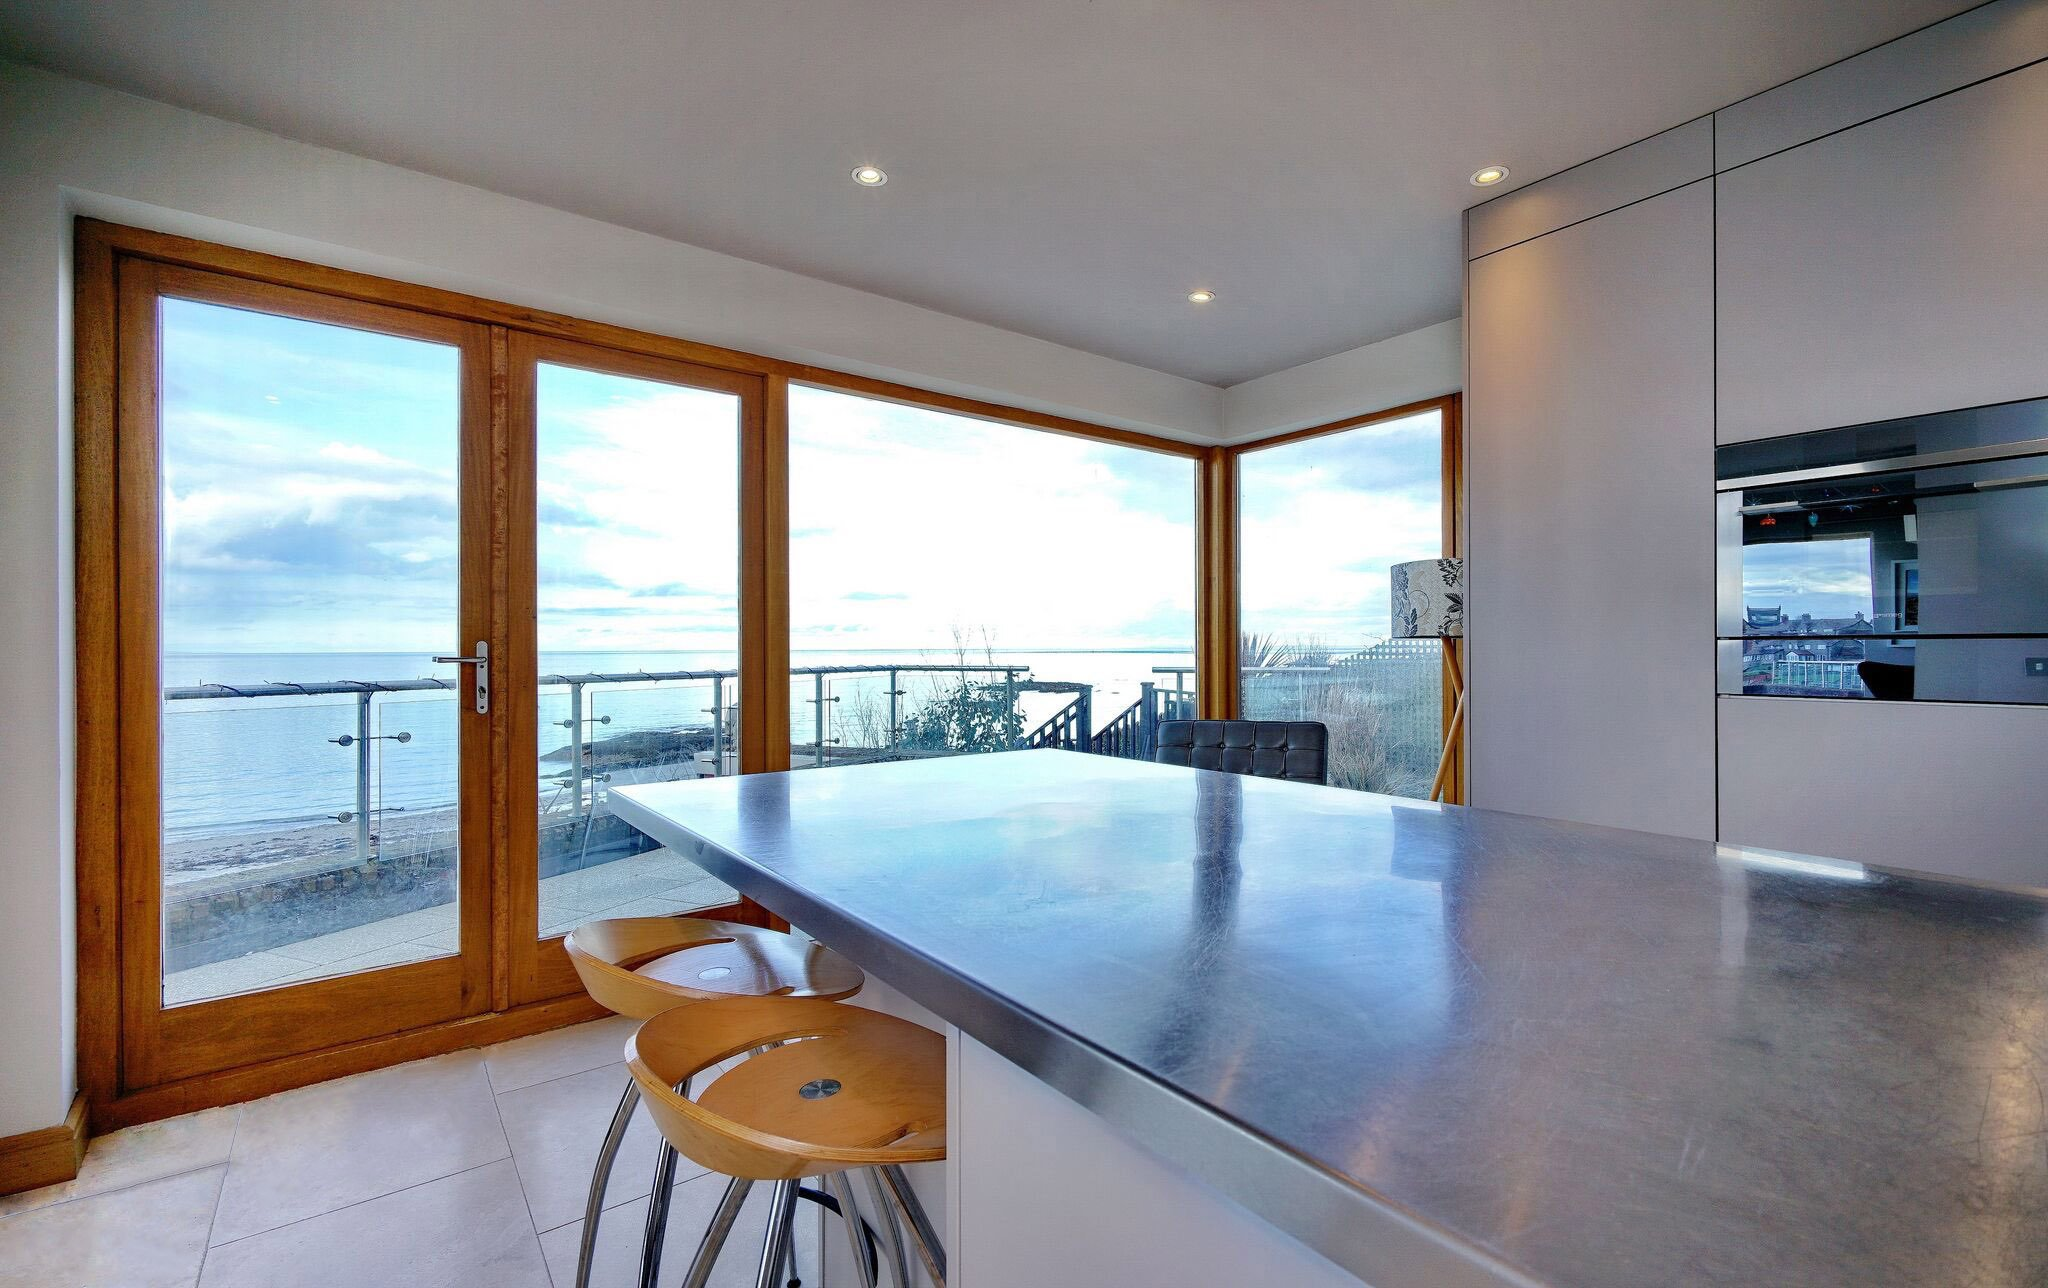 View-Adornas Kitchens Bangor-Modern Kitchen-Appliance Wall-German Kitchen-Smeg-Basalt-SeaView-Groomsport